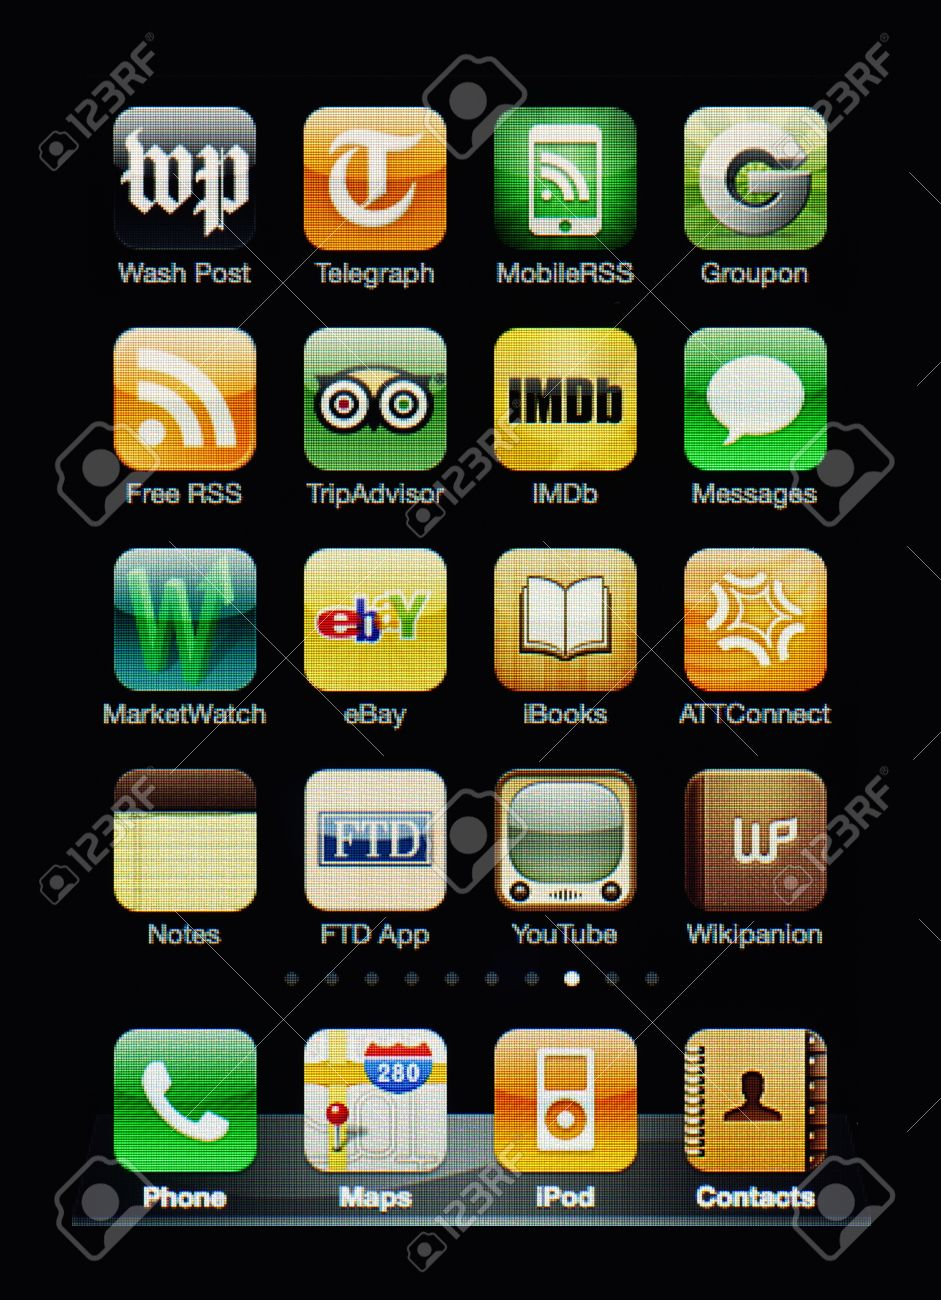 Muenster, Germany, April 16, 2011: Image of the iphone touch screen. Display shows a collection of useful apps with orange and green color scheme. Stock Photo - 9338413